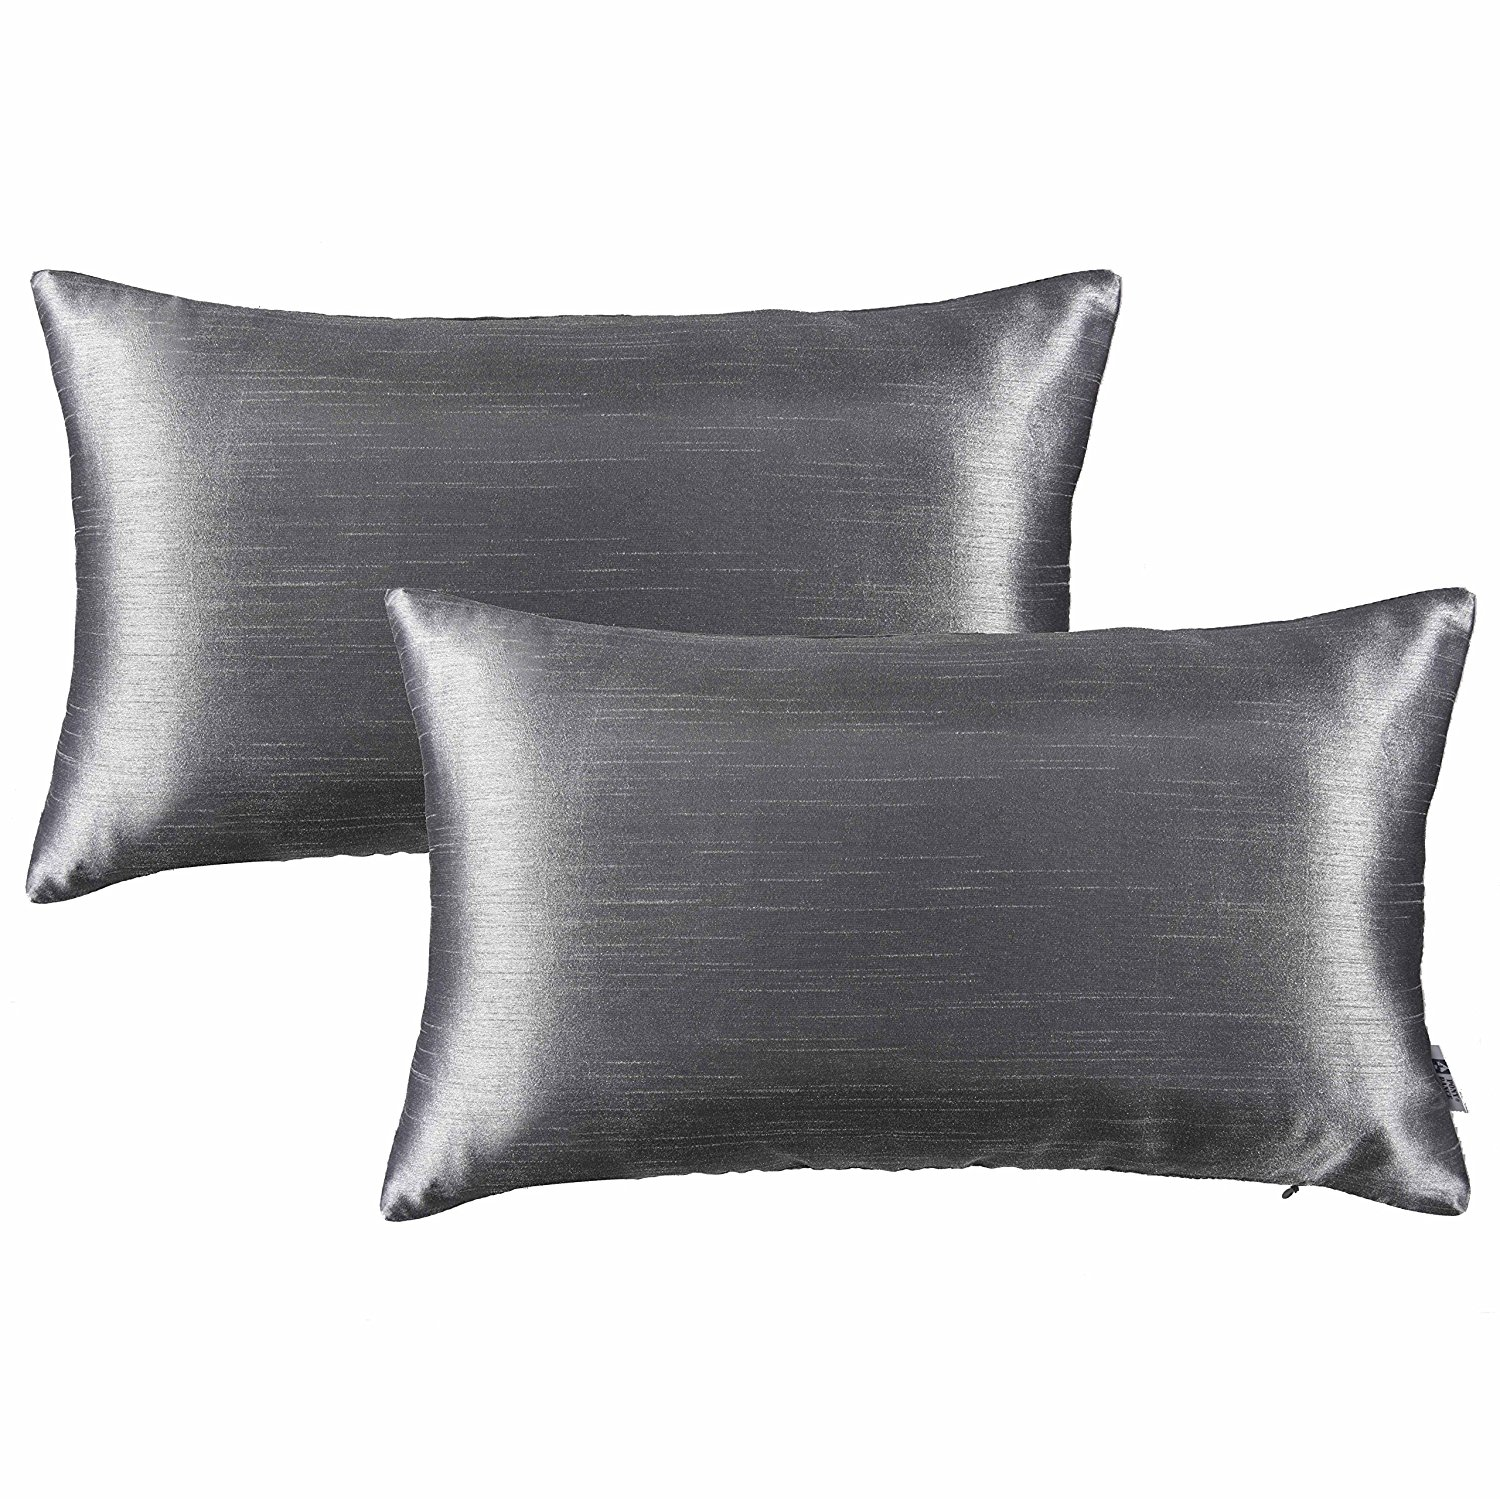 "Pony Dance Luxurious Supersoft Rectangle Decorative Throw Pillow Shams Cushion Covers for Couch, Charcoal Grey,12""x20""(30x50cm),2 Packs"